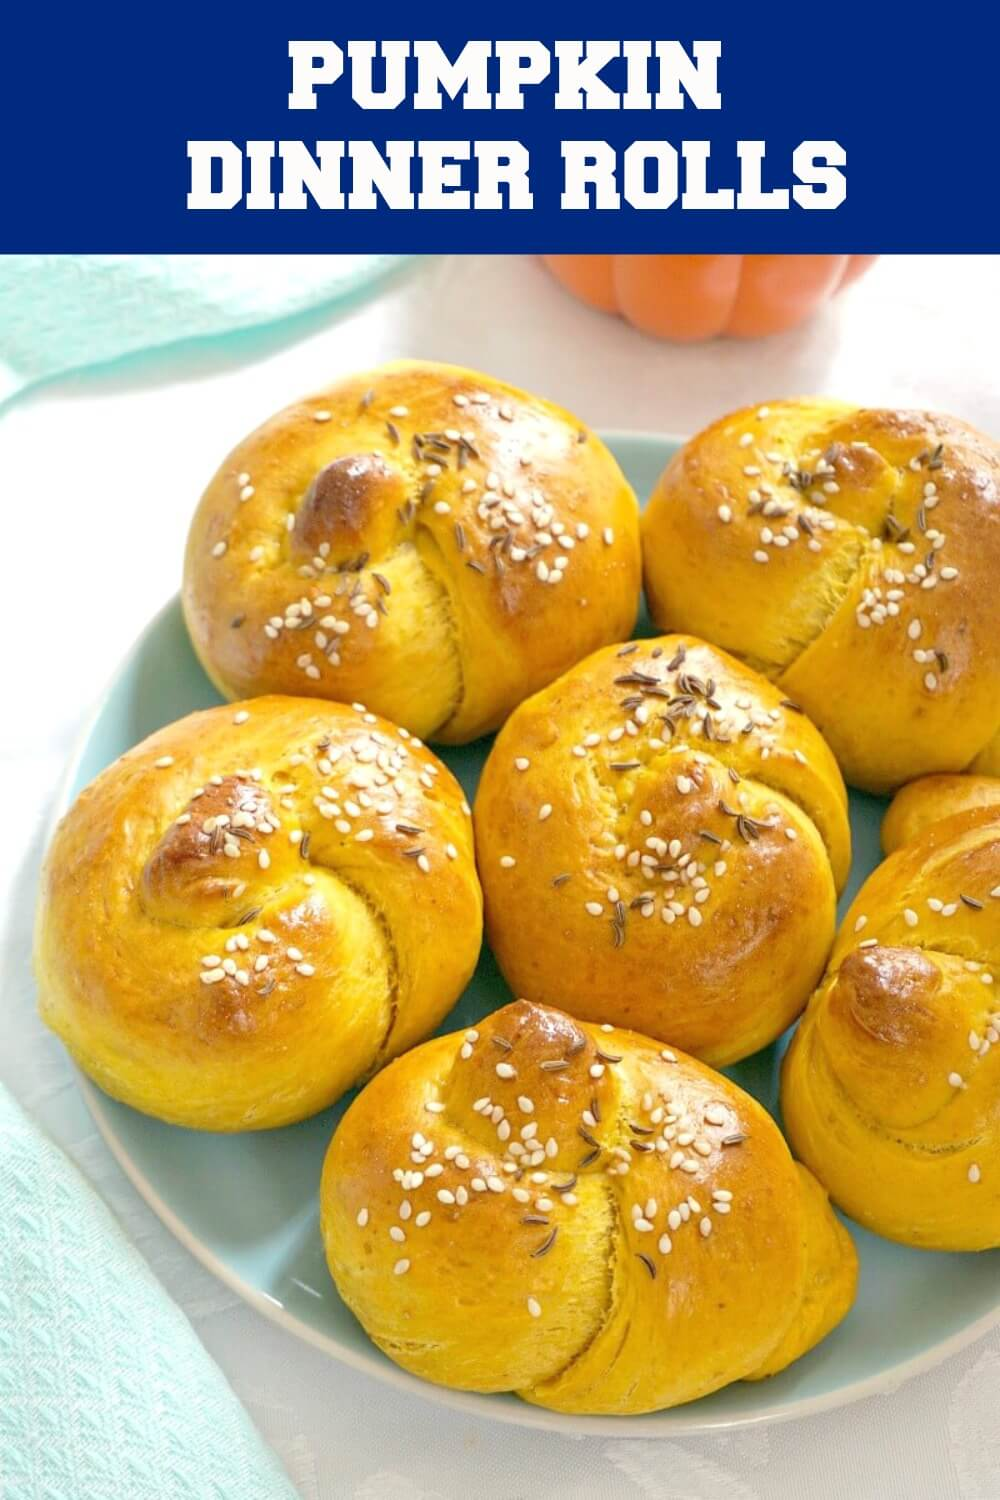 Savoury Pumpkin Dinner Rolls made with canned pumpkin; soft and fluffy, and so easy to make. From little to big tummies, your whole family will be in love with these little pumpkin beauties. Call them pumpkin buns or pumpkin knots, they are absolutely amazing. A great holiday side for your Thanksgiving or Christmas dinner. #homemadedinnerrolls #dinnerrolls #pumpkinrolls #pumpkinrecipe #thanksgivingside , #pumpkin